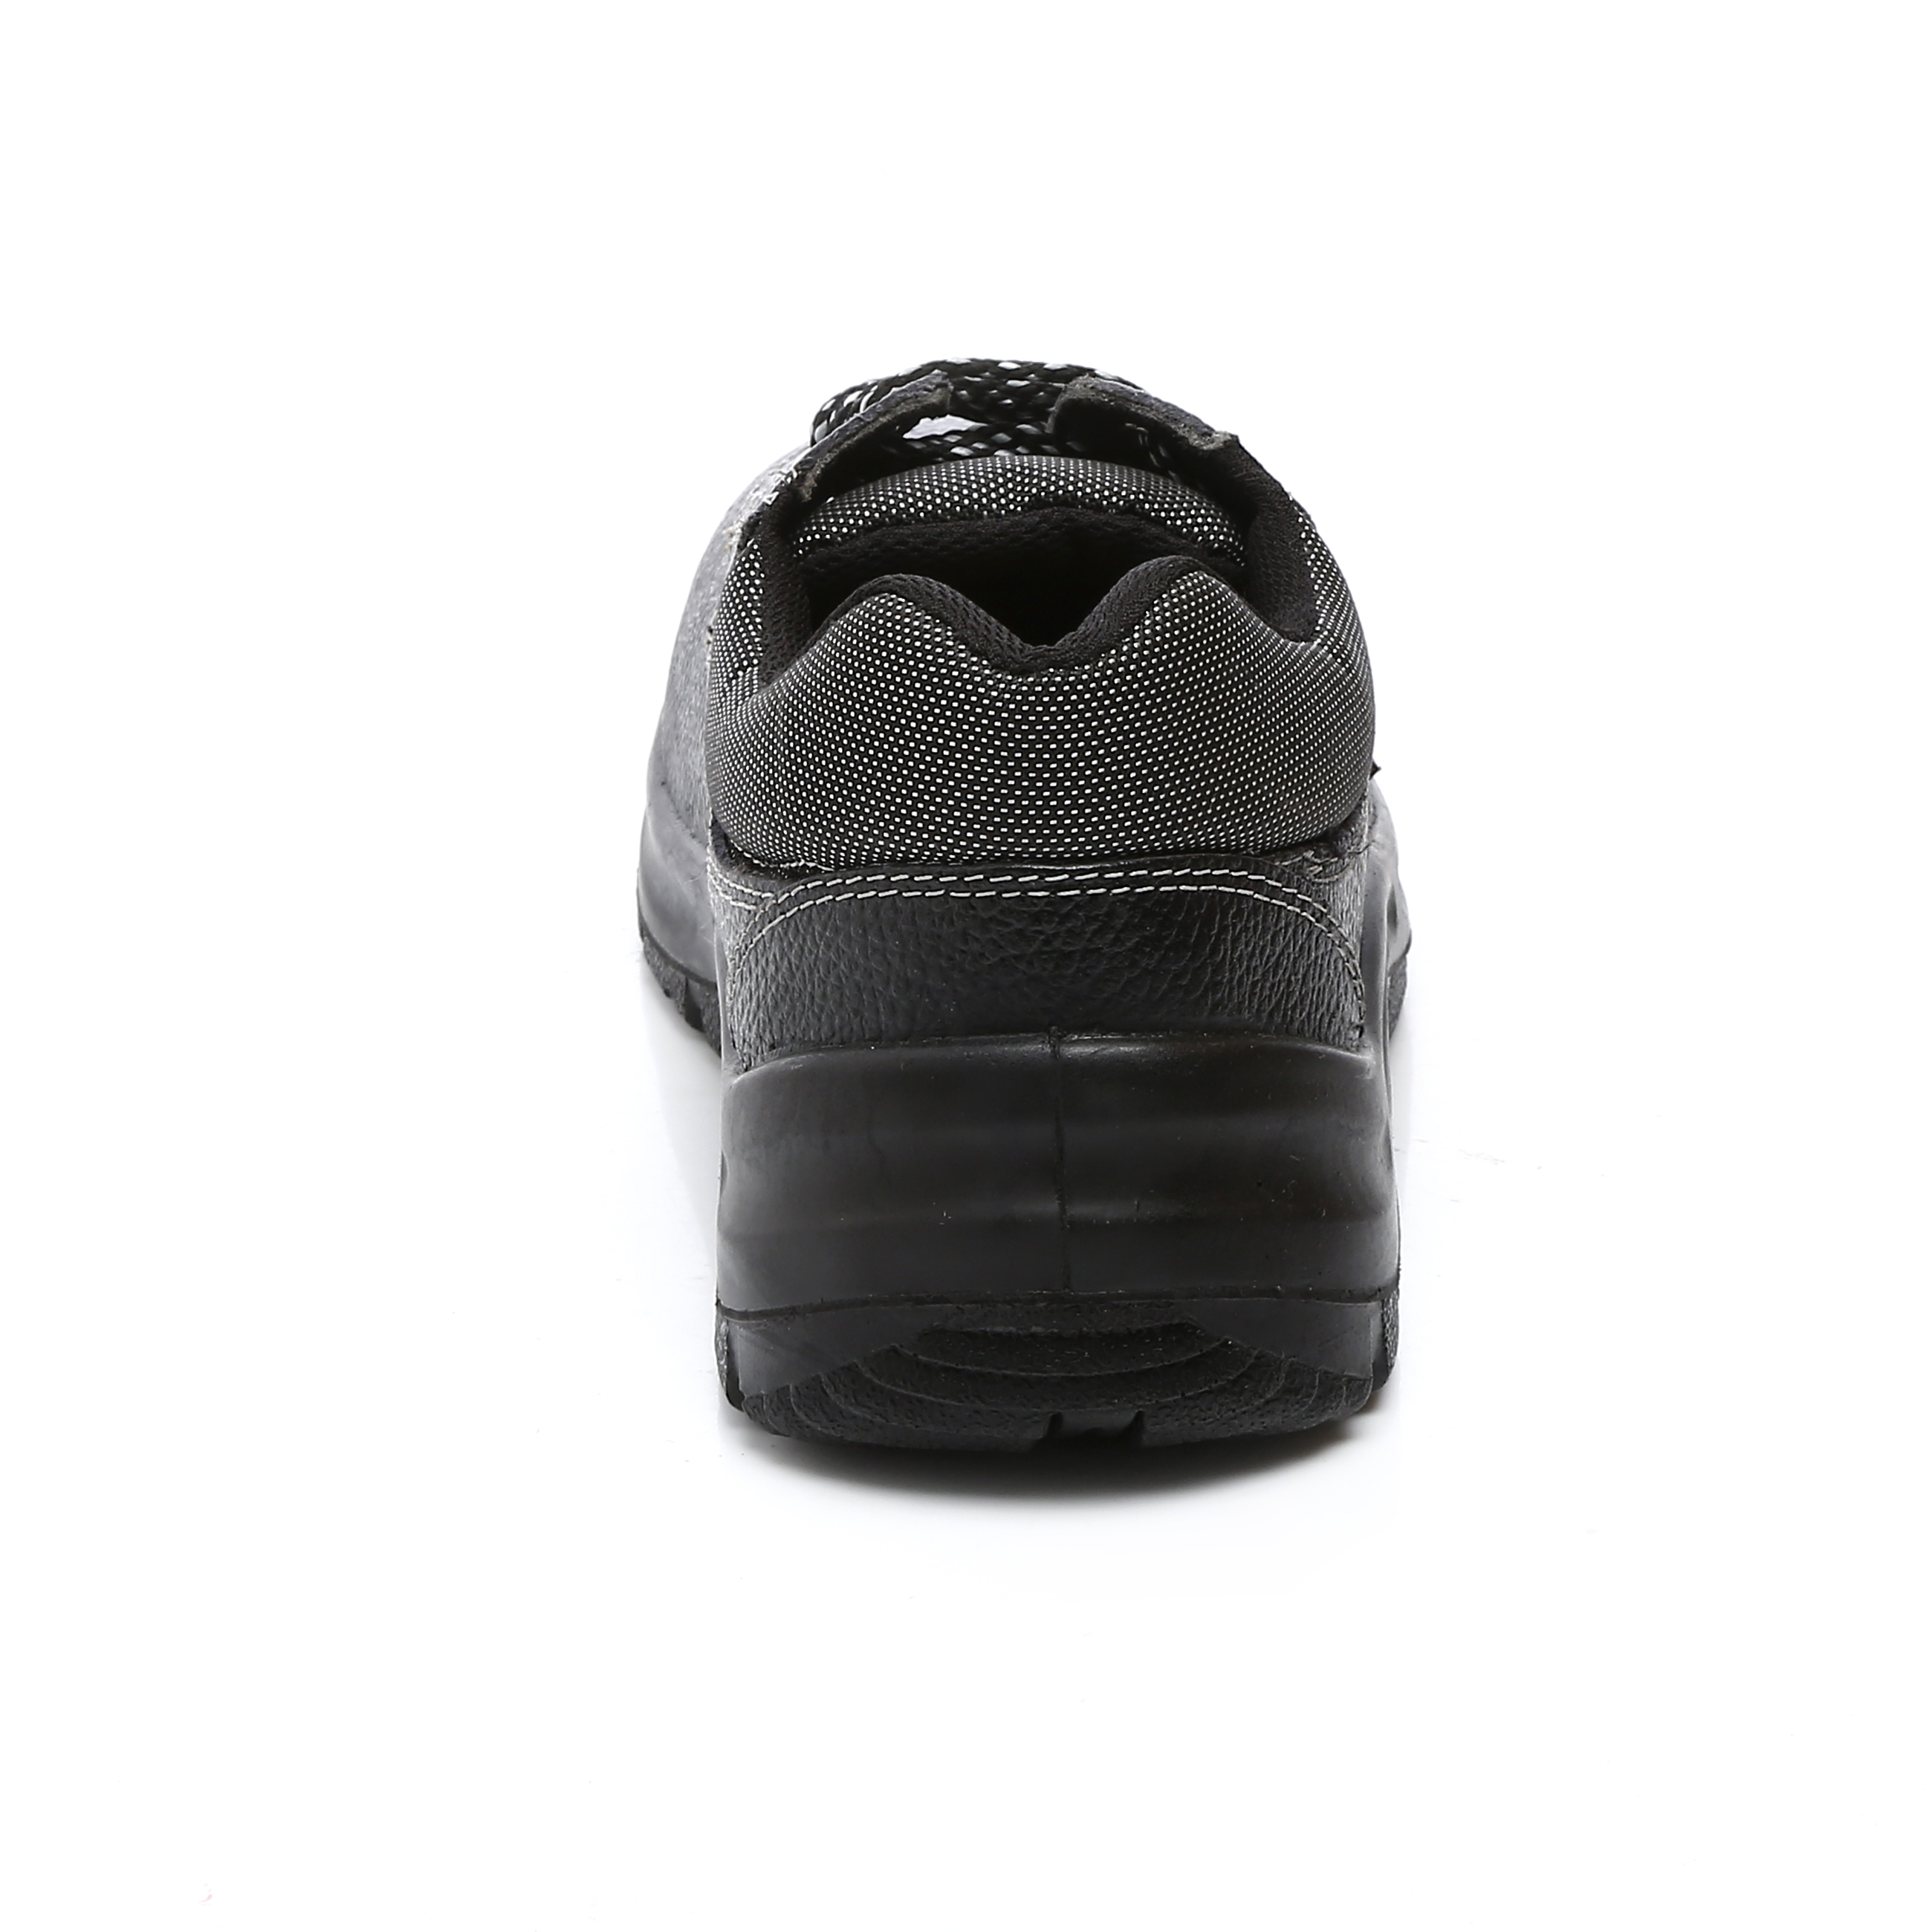 Top Brand Safety Shoes